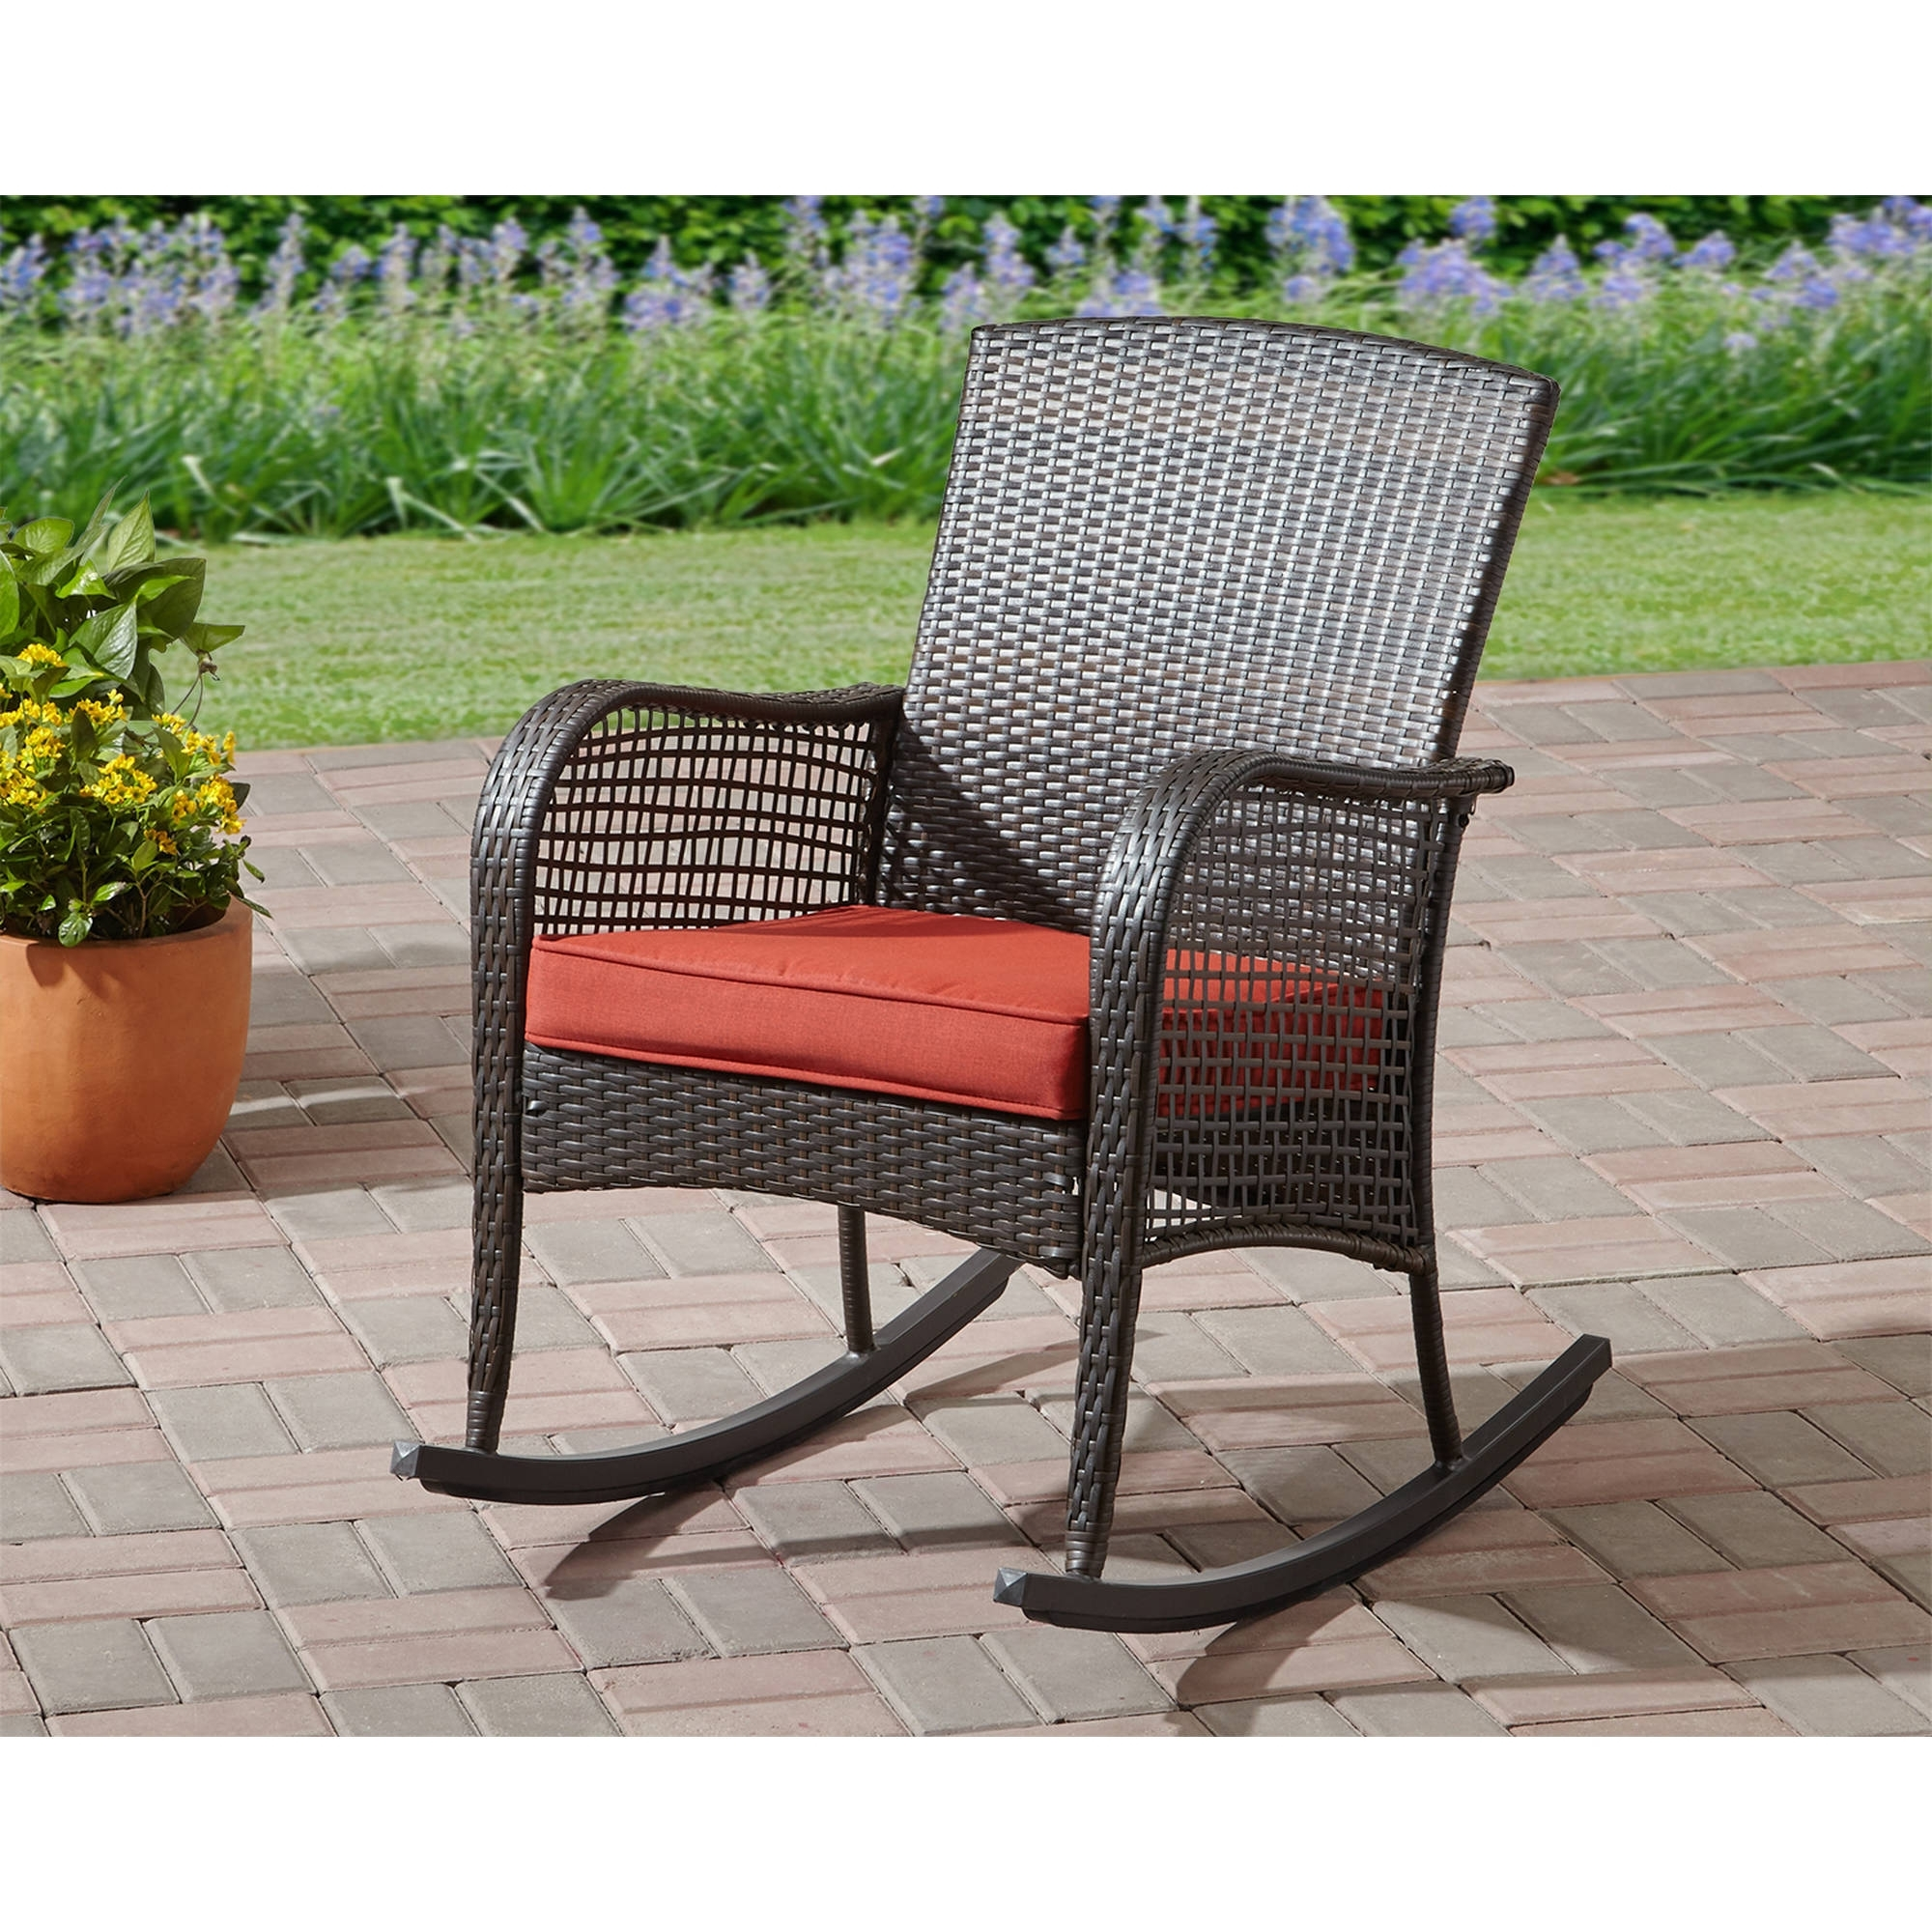 Rattan Outdoor Rocking Chairs Regarding Current Patio Chair And Table – Decco.voiceoverservices (View 11 of 15)